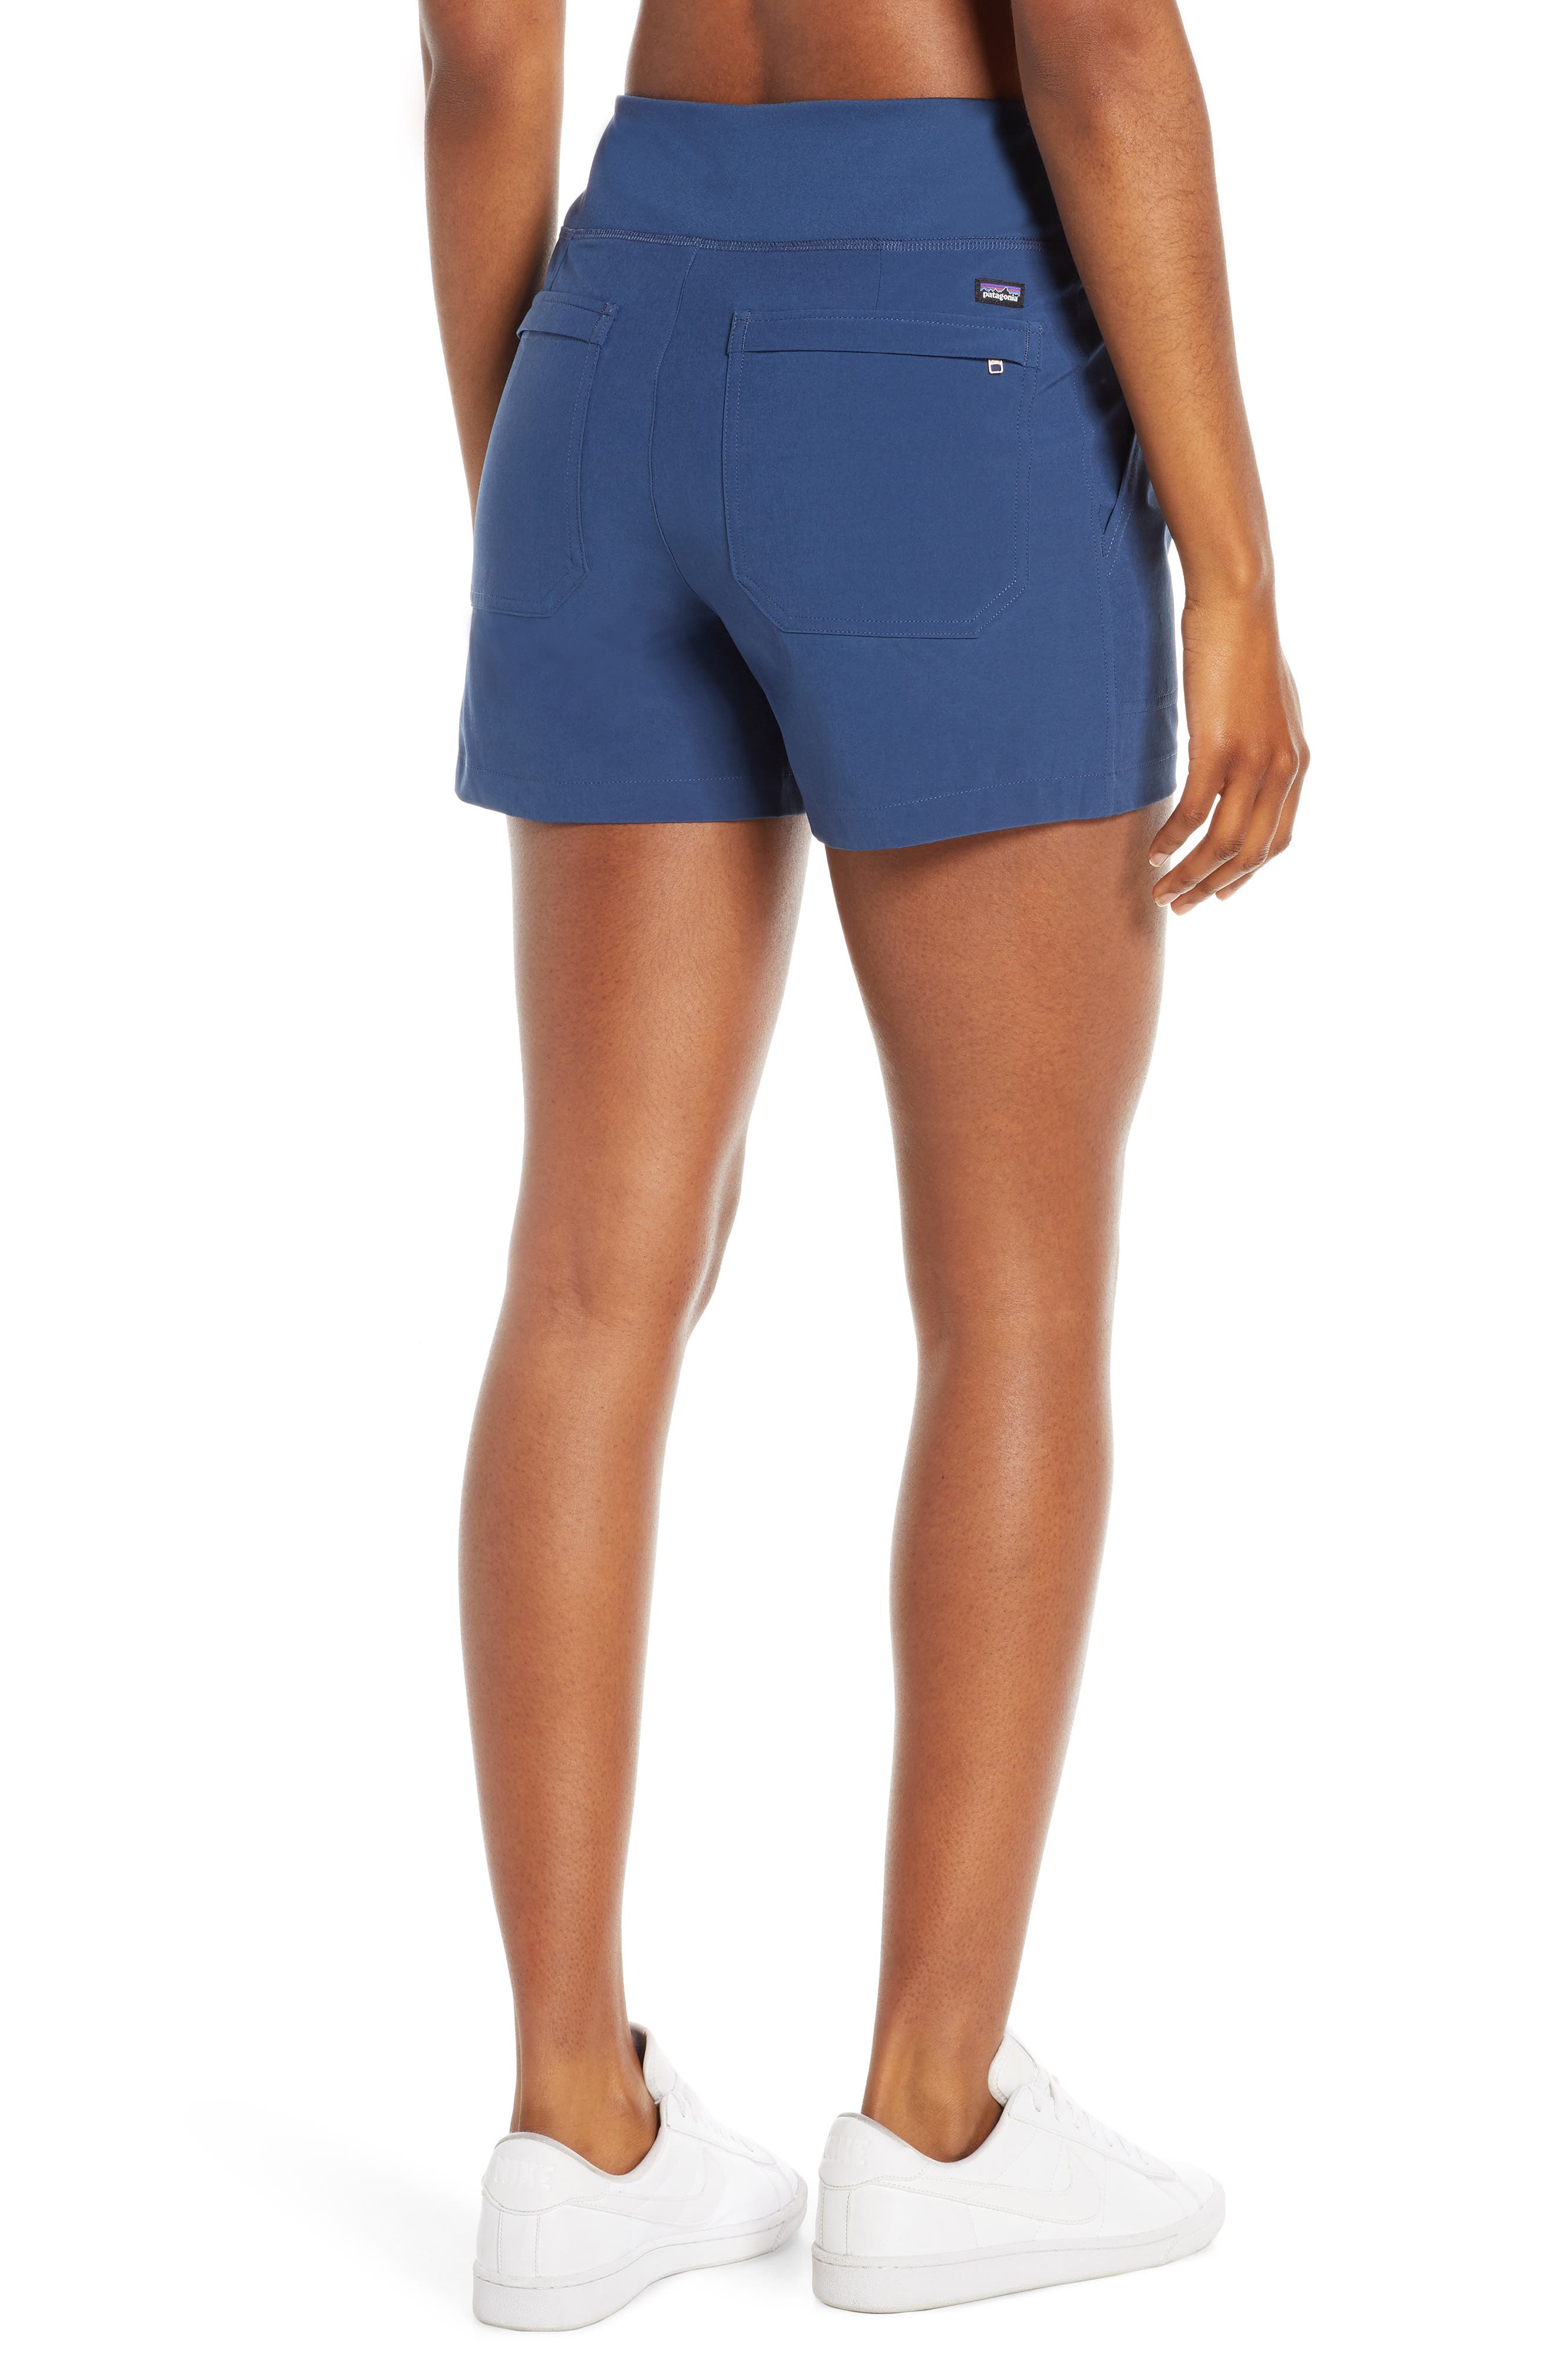 abaa64e0fa4 Women's Patagonia Active & Workout Shorts & Skirts | Nordstrom